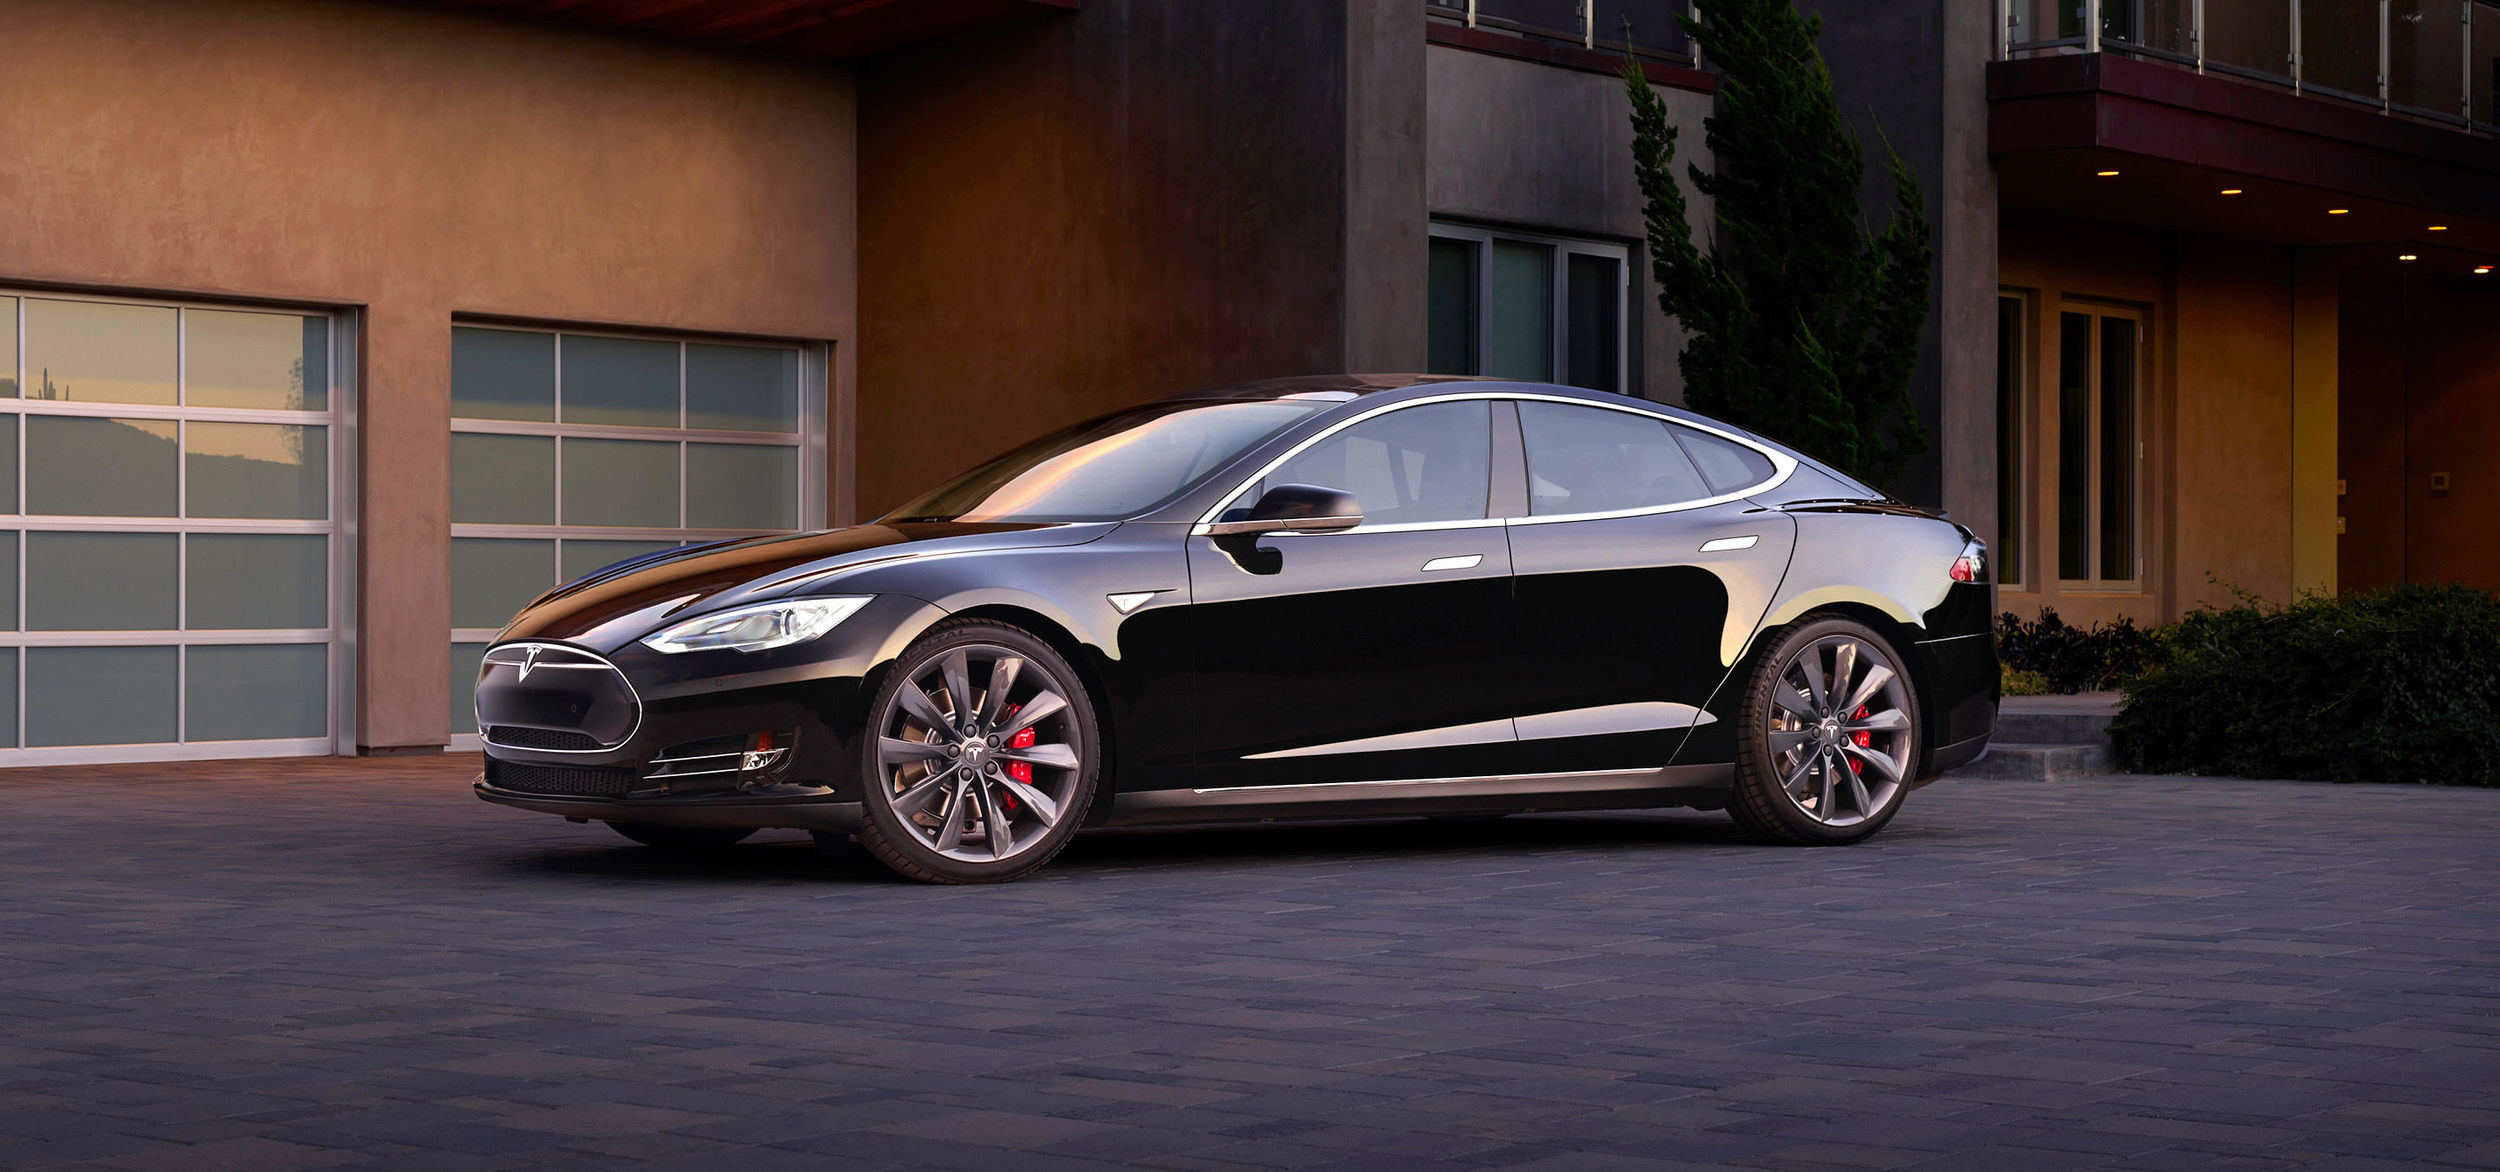 The test drive car pretty much looked like this. Image © Tesla Motors, because too dark for own photos